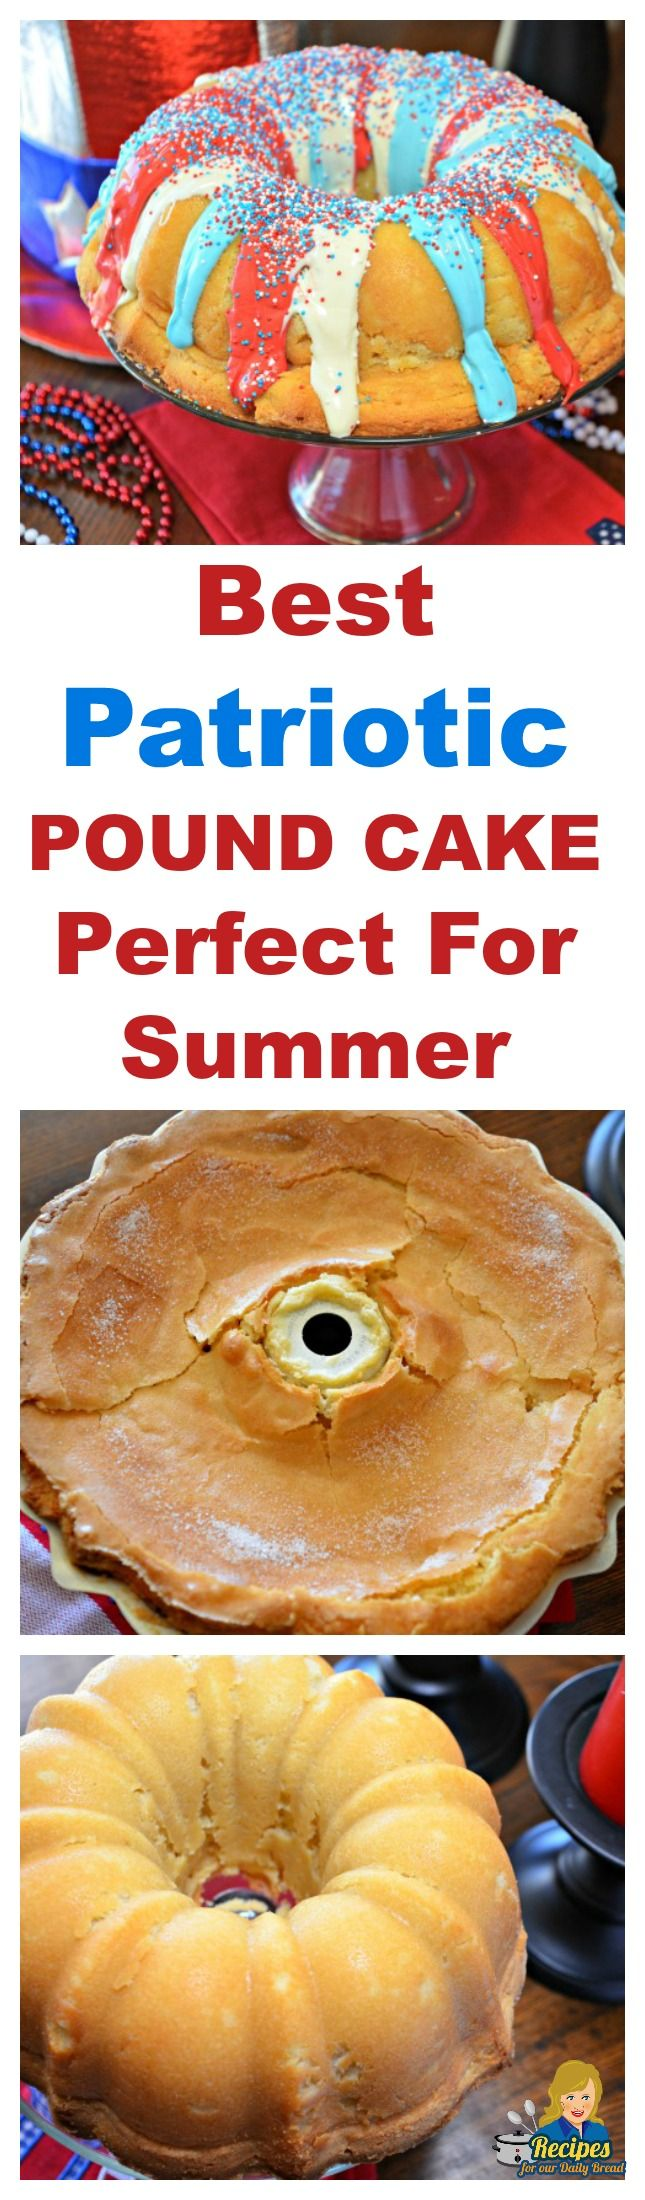 + images about JUST POUND CAKE on Pinterest | Pound cakes, Pound cake ...